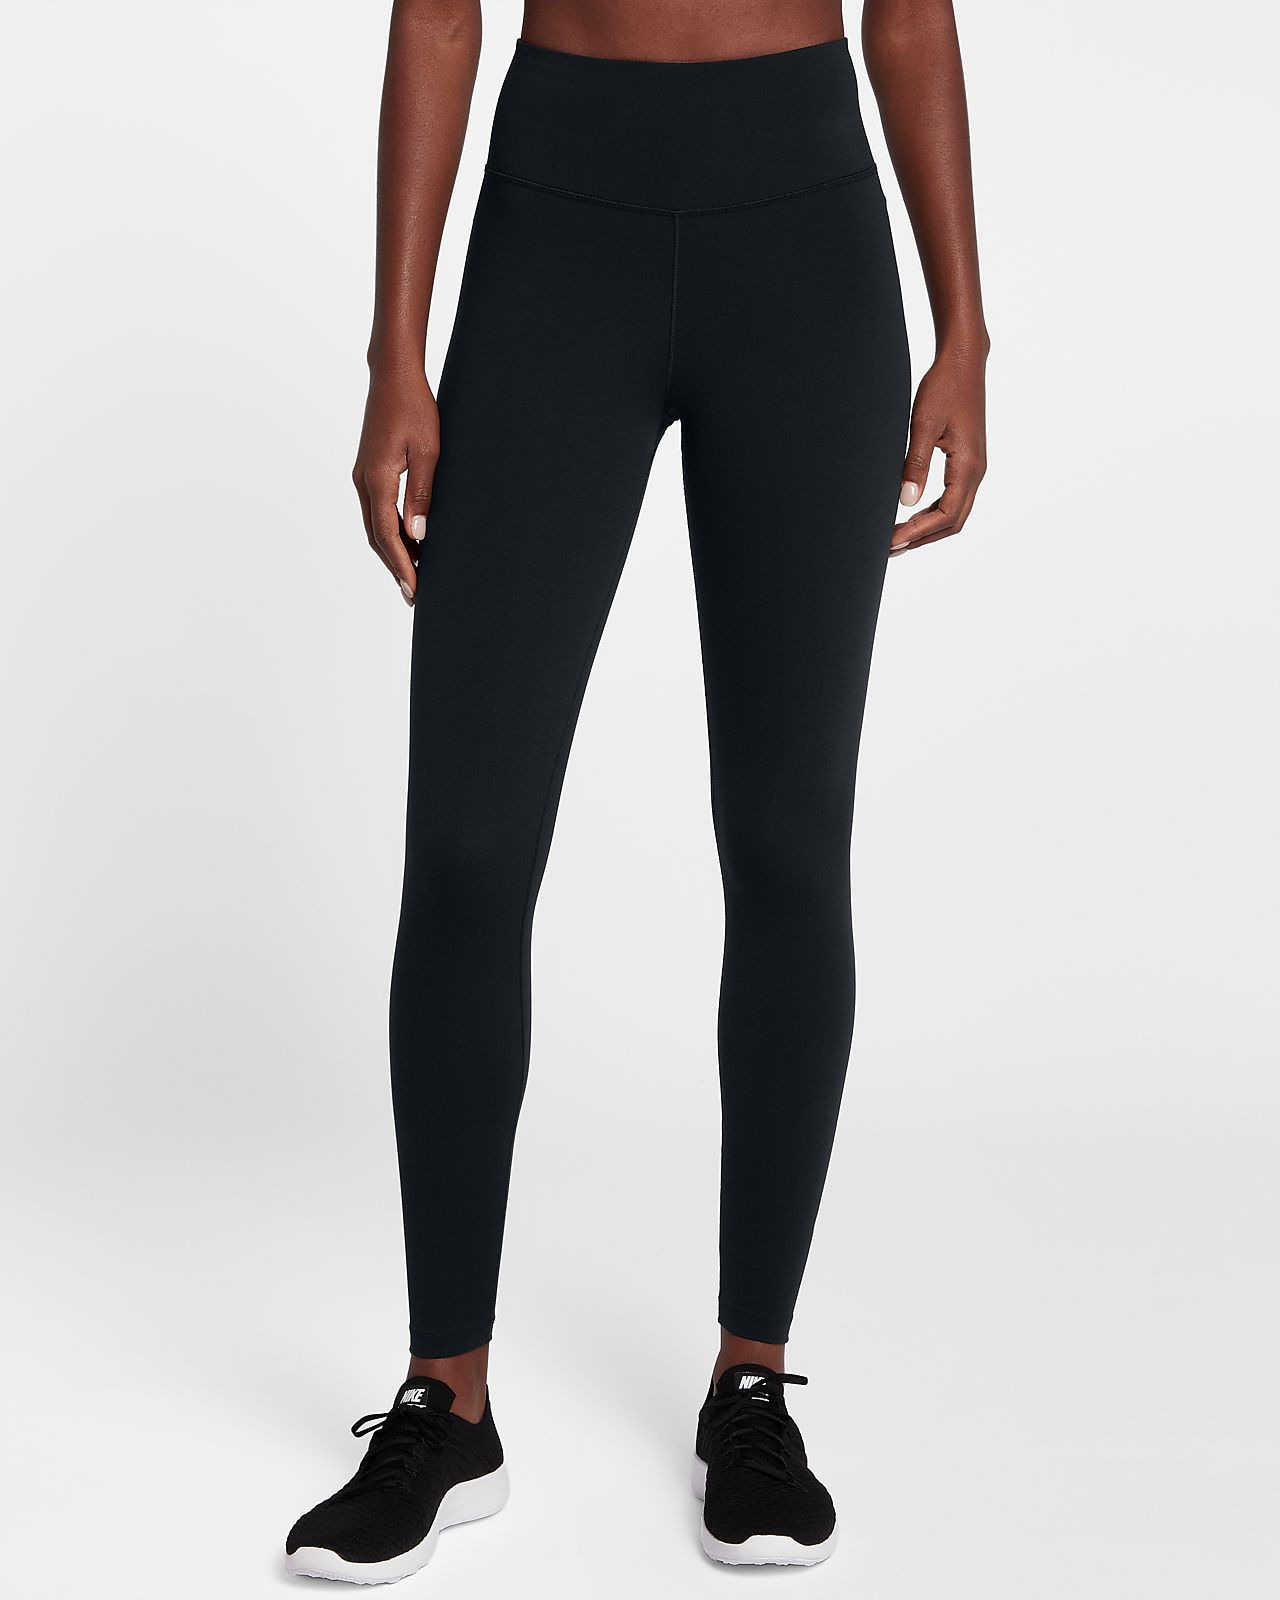 3c6ebfe1e3766 Nike Sculpt Lux Women's High-Waist Training Tights. Nike.com AU